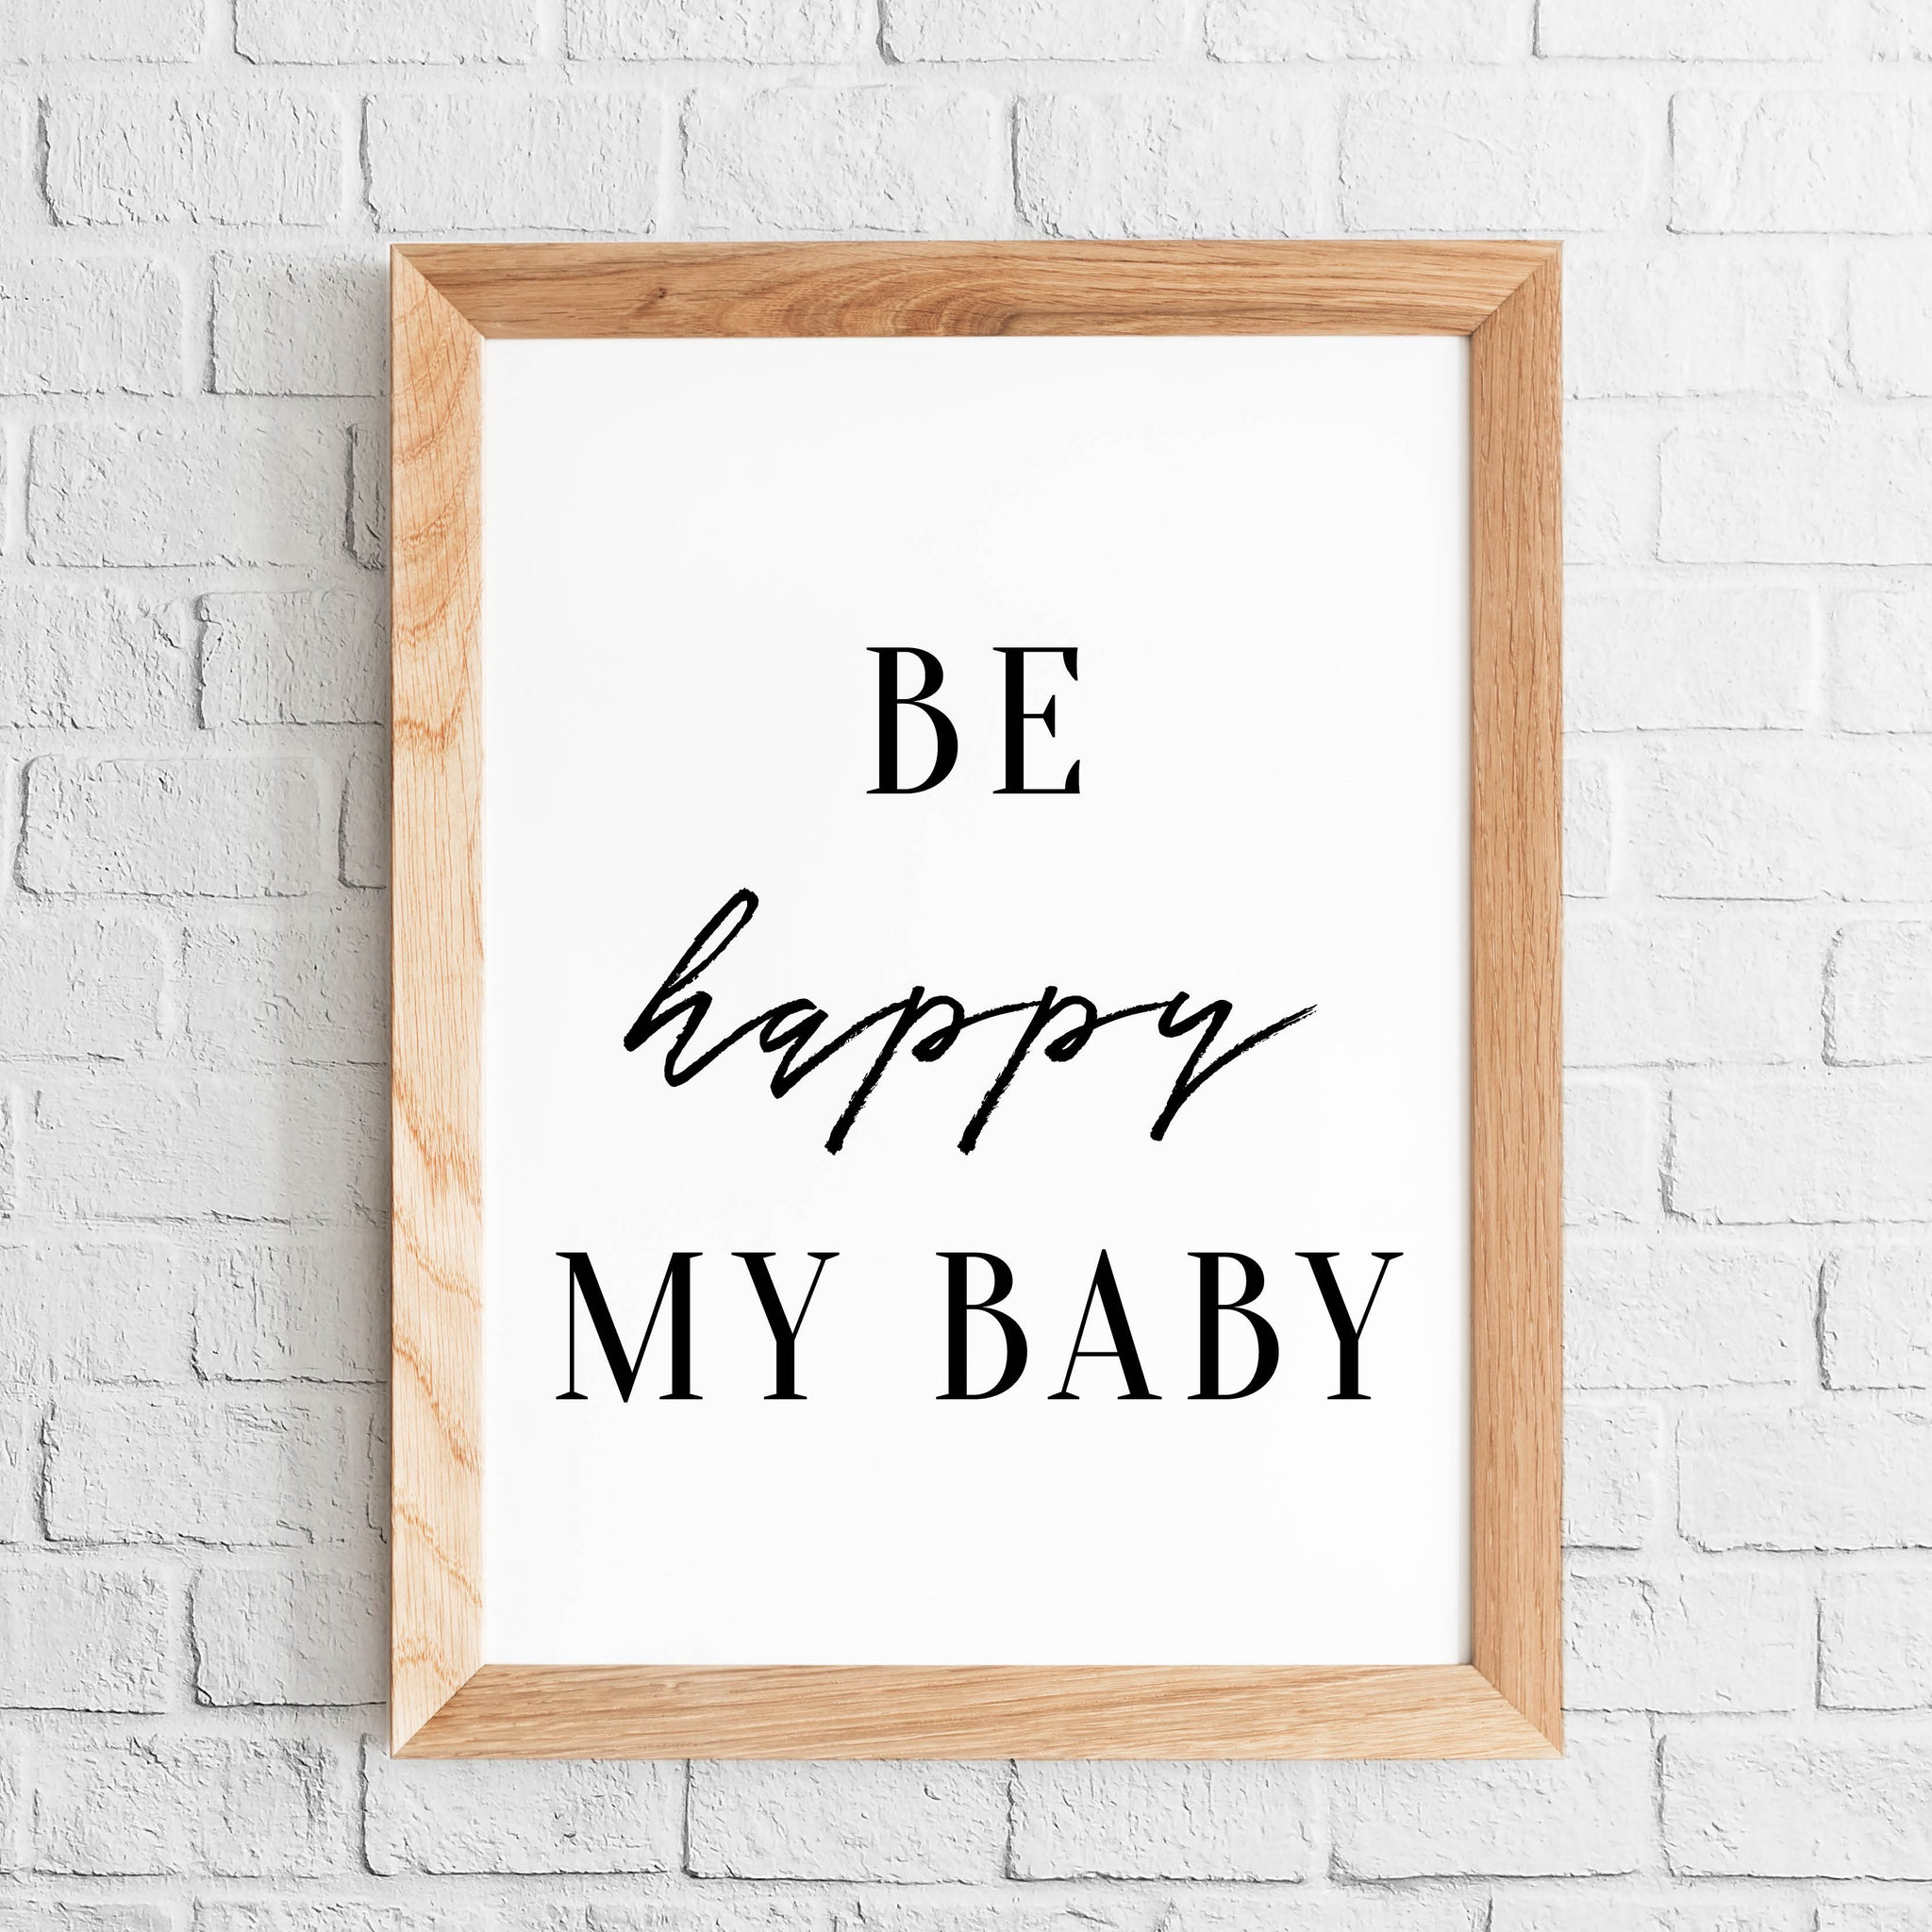 POSTER CHAMBRE BÉBÉ 'BE HAPPY MY BABY' - SEVEN PAPER